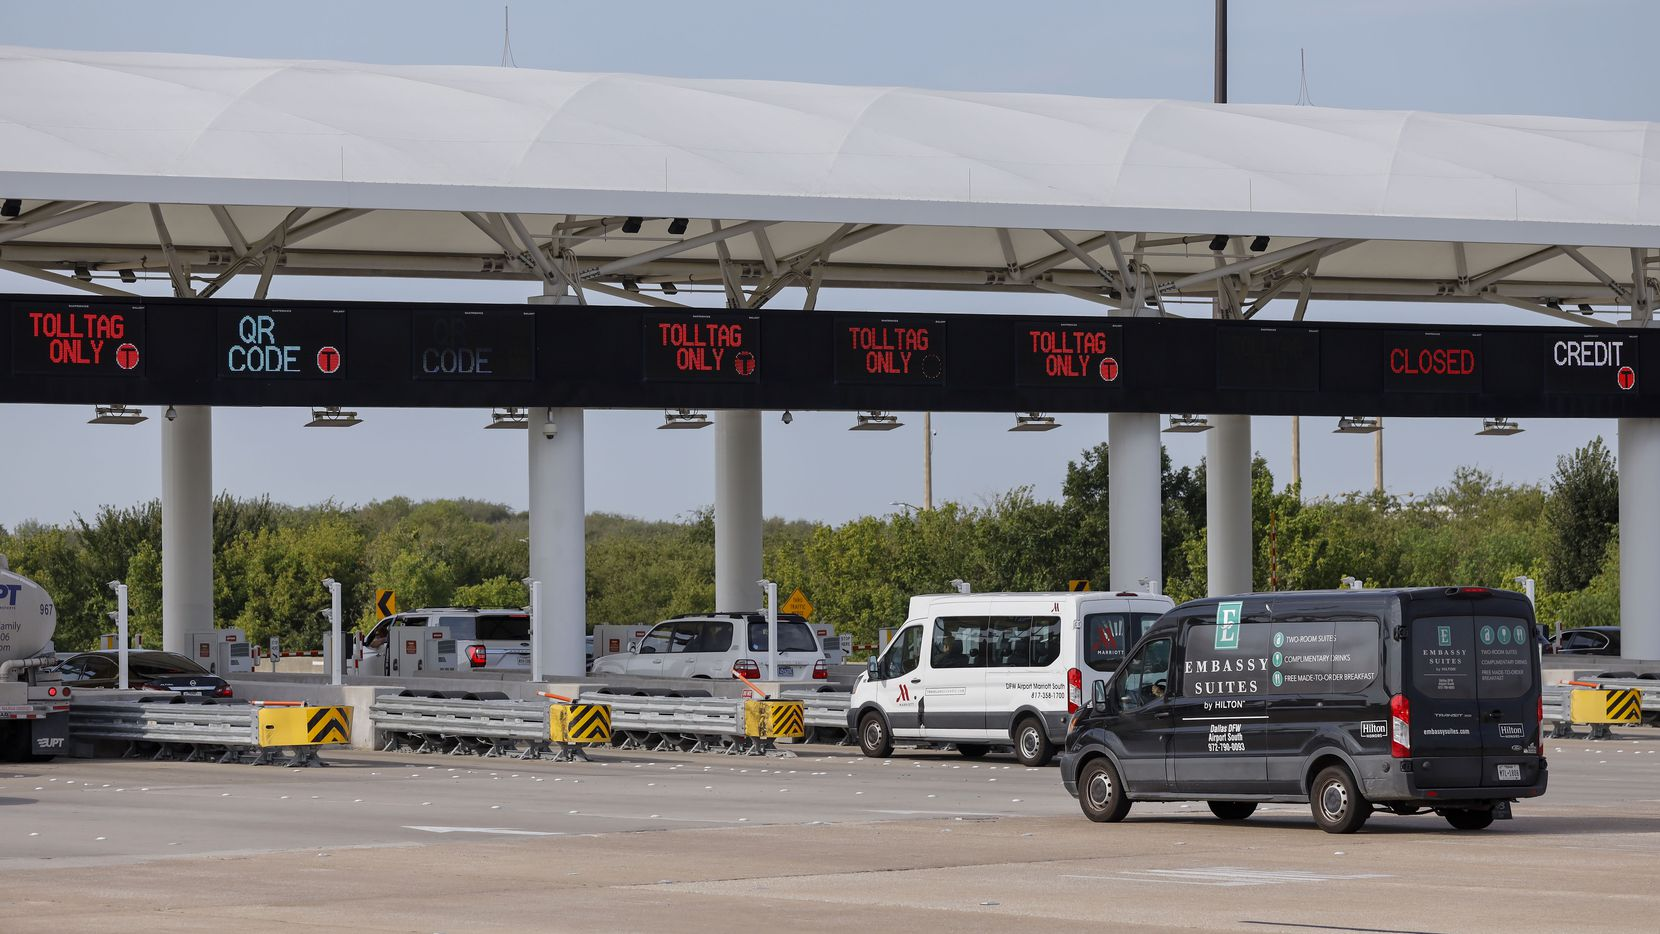 Vehicles stop at toll booths at the Dallas Fort Worth International Airport's south entrance.